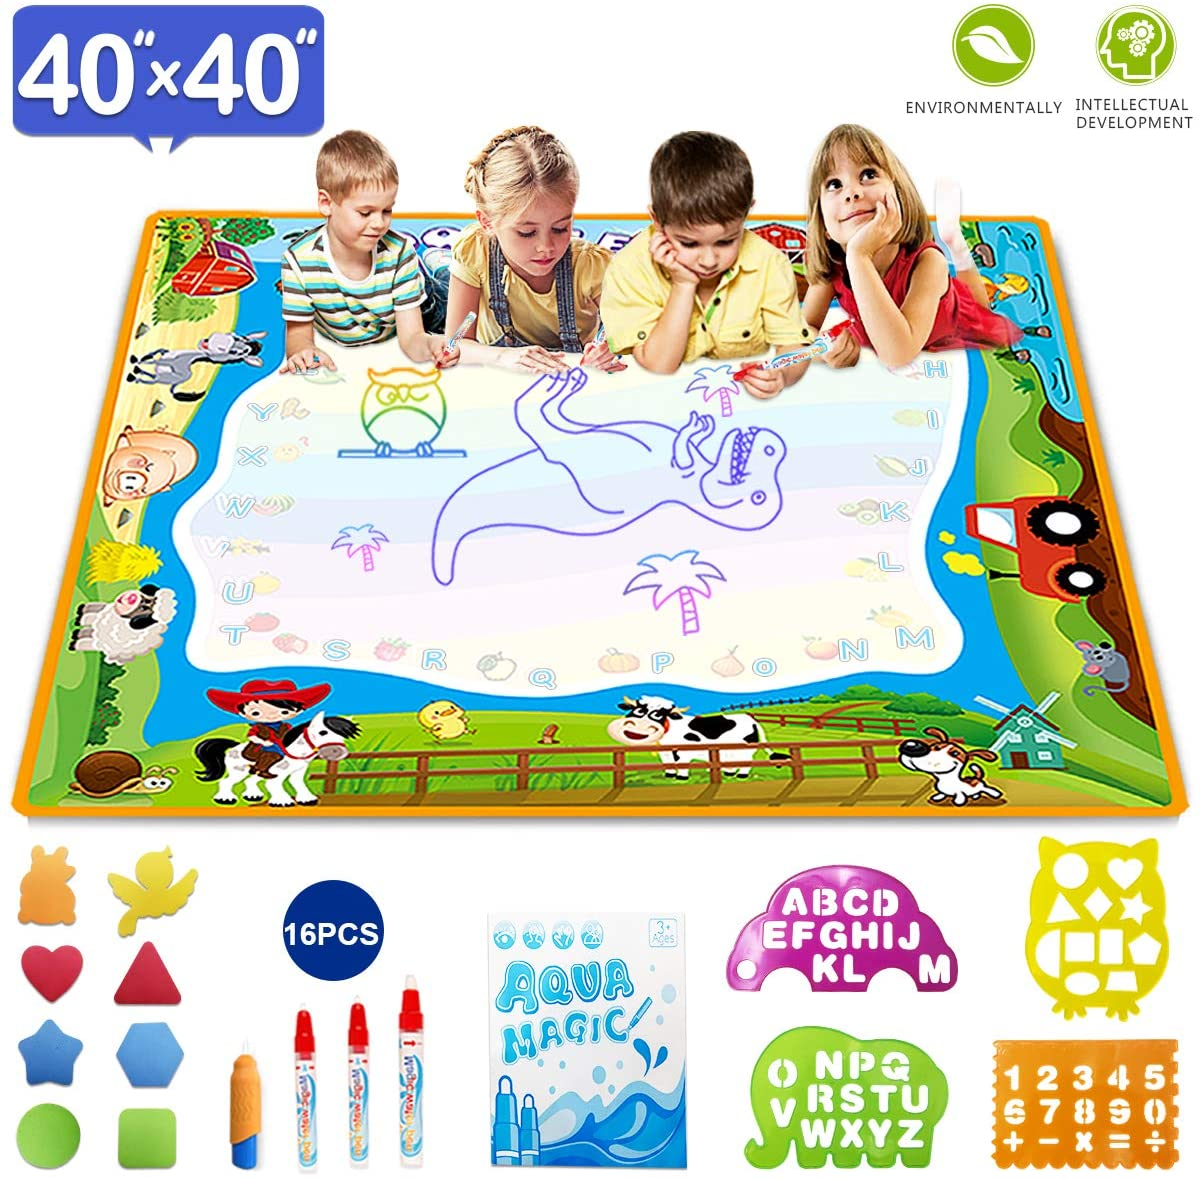 OKBONN Drawing Mat,Aqua Magic Mat Extra Large Water Doodle mat, Educational Toys Gifts for Kids Age 2+,Drawing Set with Non-Toxic Water Pens for Toddlers 40×40 inch